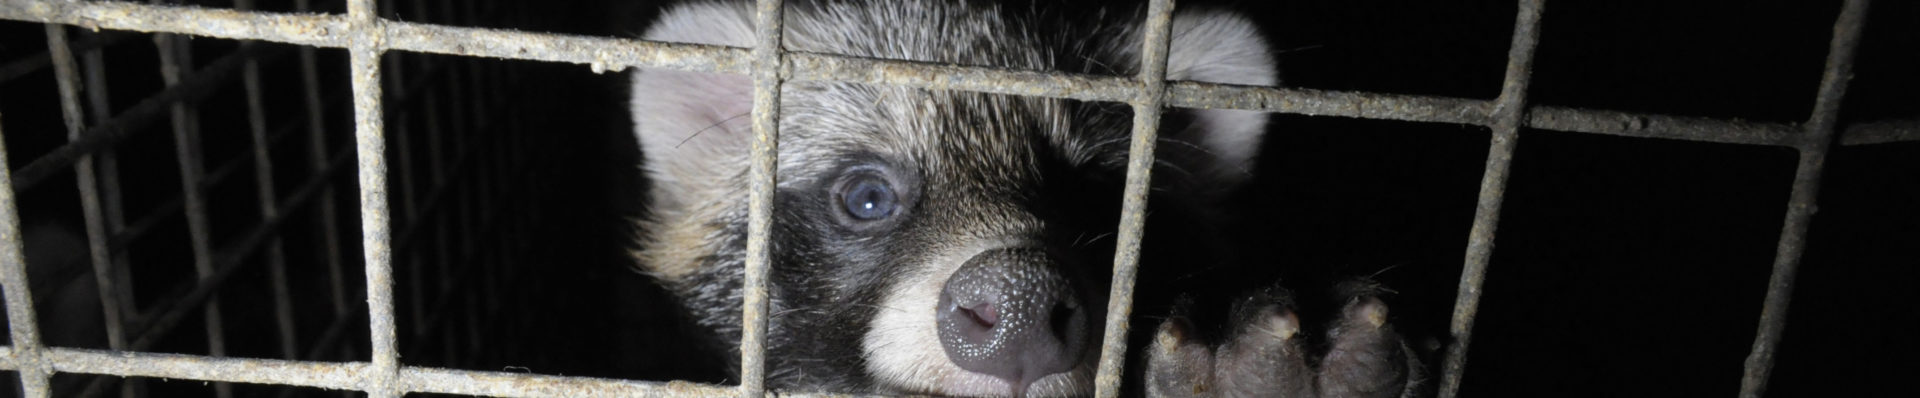 Bulgarian Citizens Demand Ban on Fur Farming